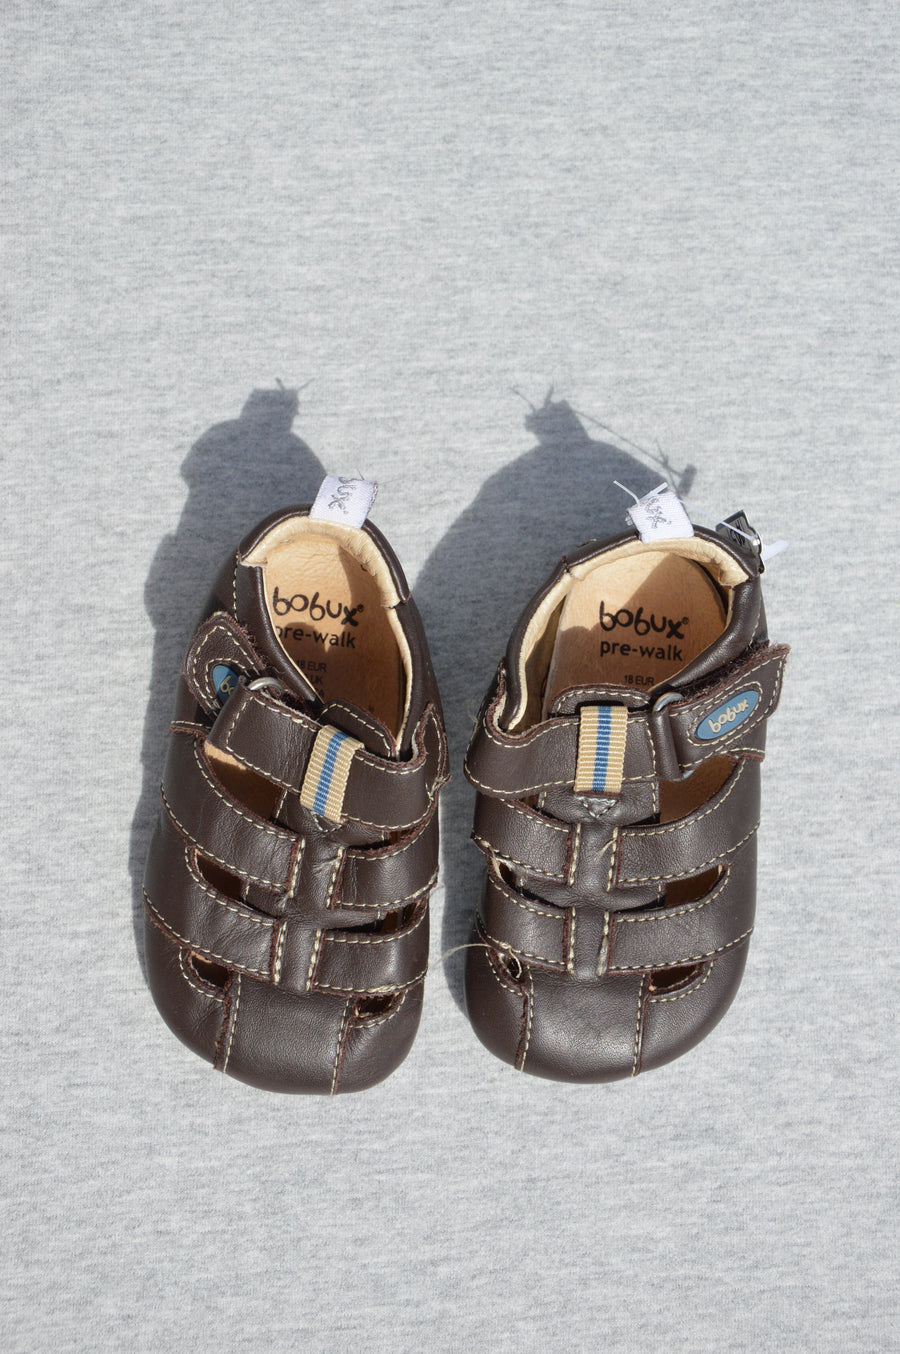 Bobux - nearly new - brown pre-walk sandals, size NZ 2